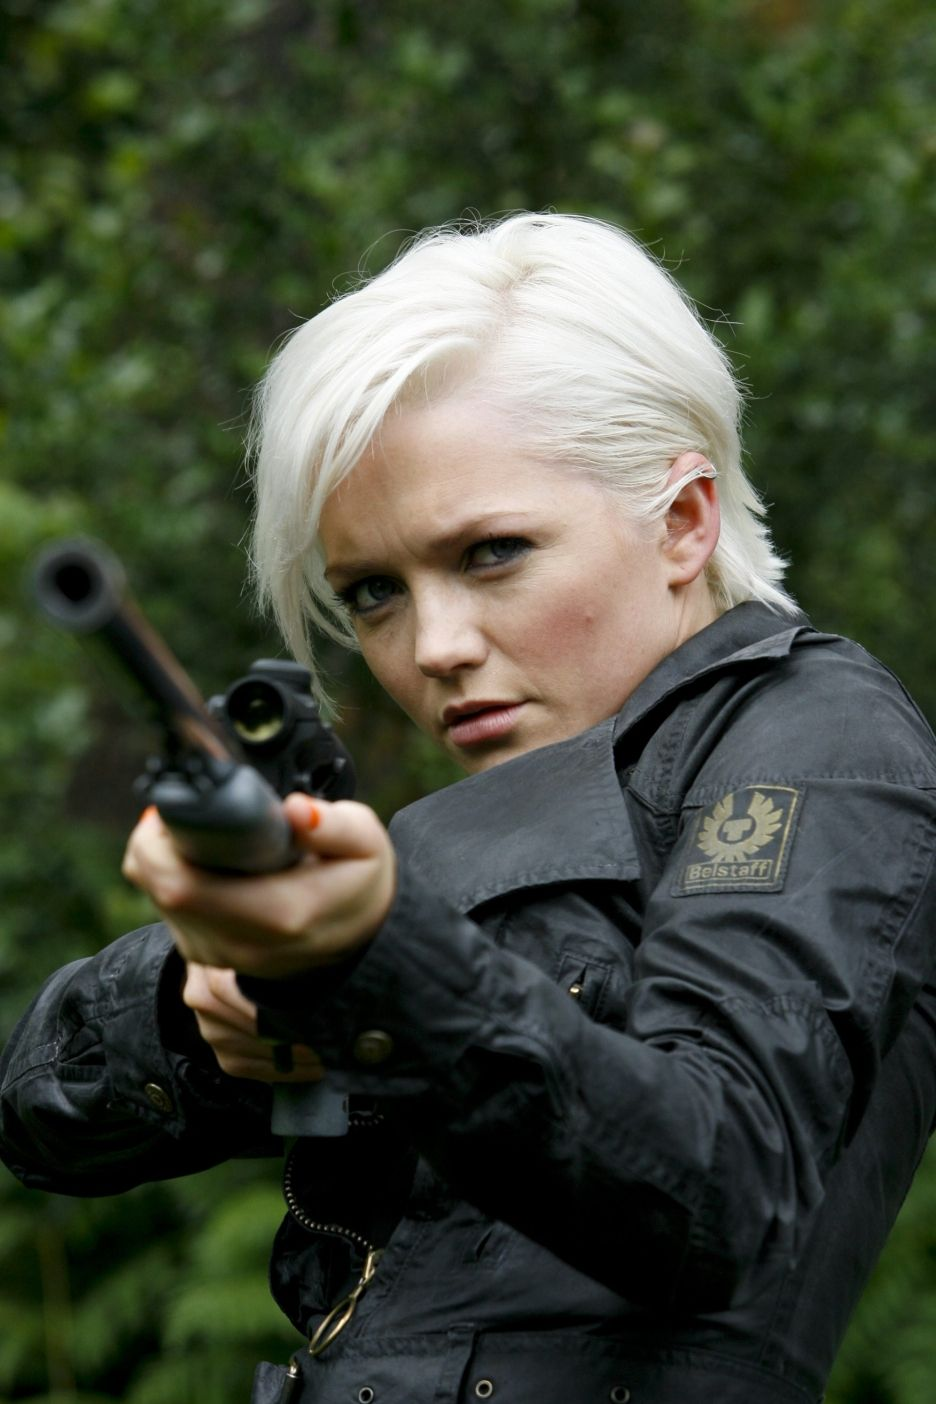 hannah spearritt 2015hannah spearritt imdb, hannah spearritt tumblr, hannah spearritt interview, hannah spearritt instagram, hannah spearritt wiki, hannah spearritt, hannah spearritt and andrew lee potts, hannah spearritt twitter, hannah spearritt and paul cattermole, hannah spearritt 2015, hannah spearritt facebook, hannah spearritt s club 7, hannah spearritt feet, hannah spearritt hot, hannah spearritt casualty, hannah spearritt boyfriend, hannah spearritt net worth, hannah spearritt bikini, hannah spearritt and paul